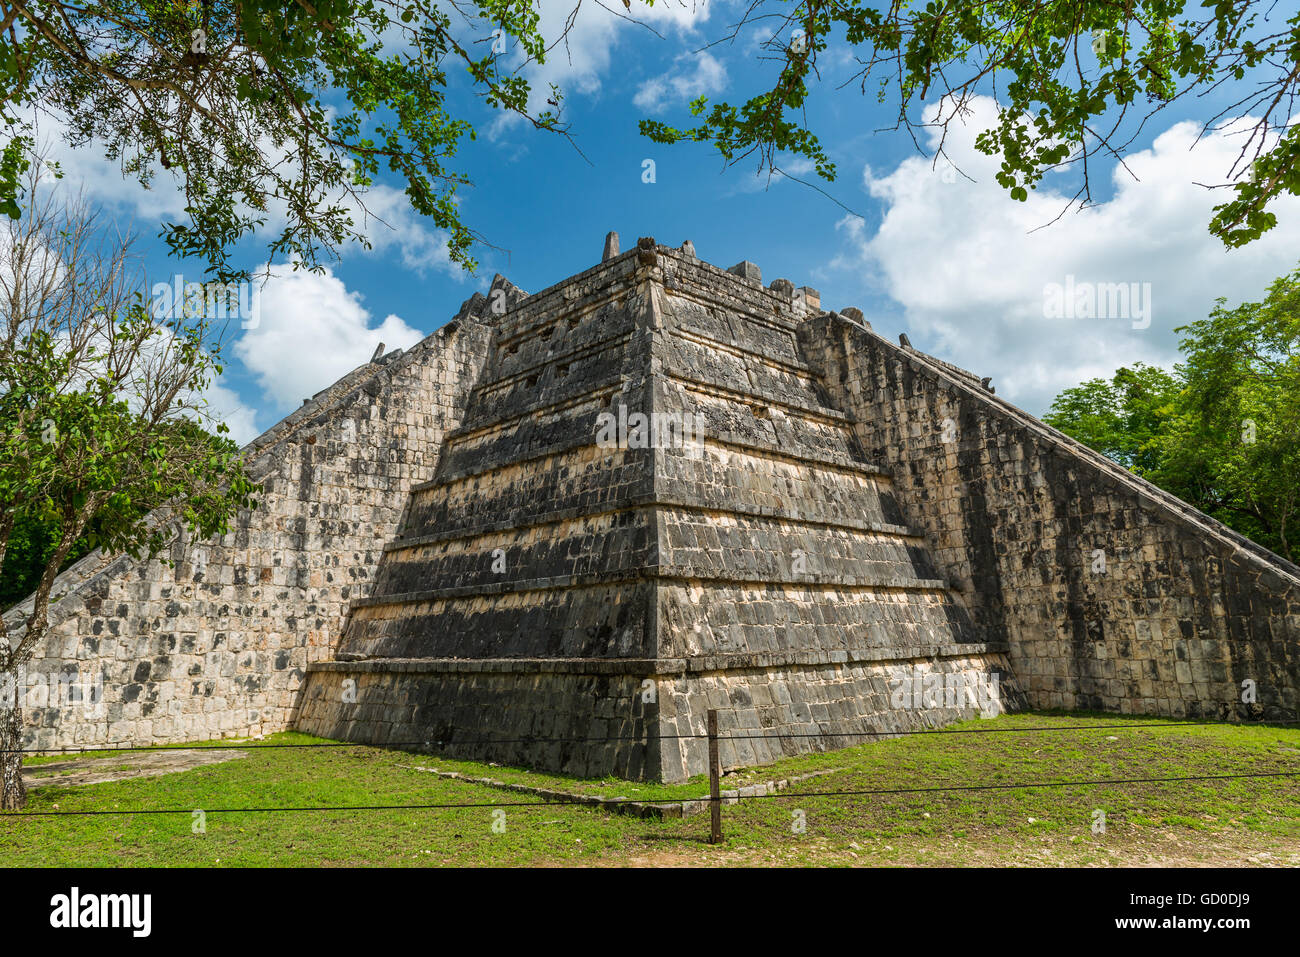 The ancient Mayan pyramids at Chichen Itza, Mexico. - Stock Image